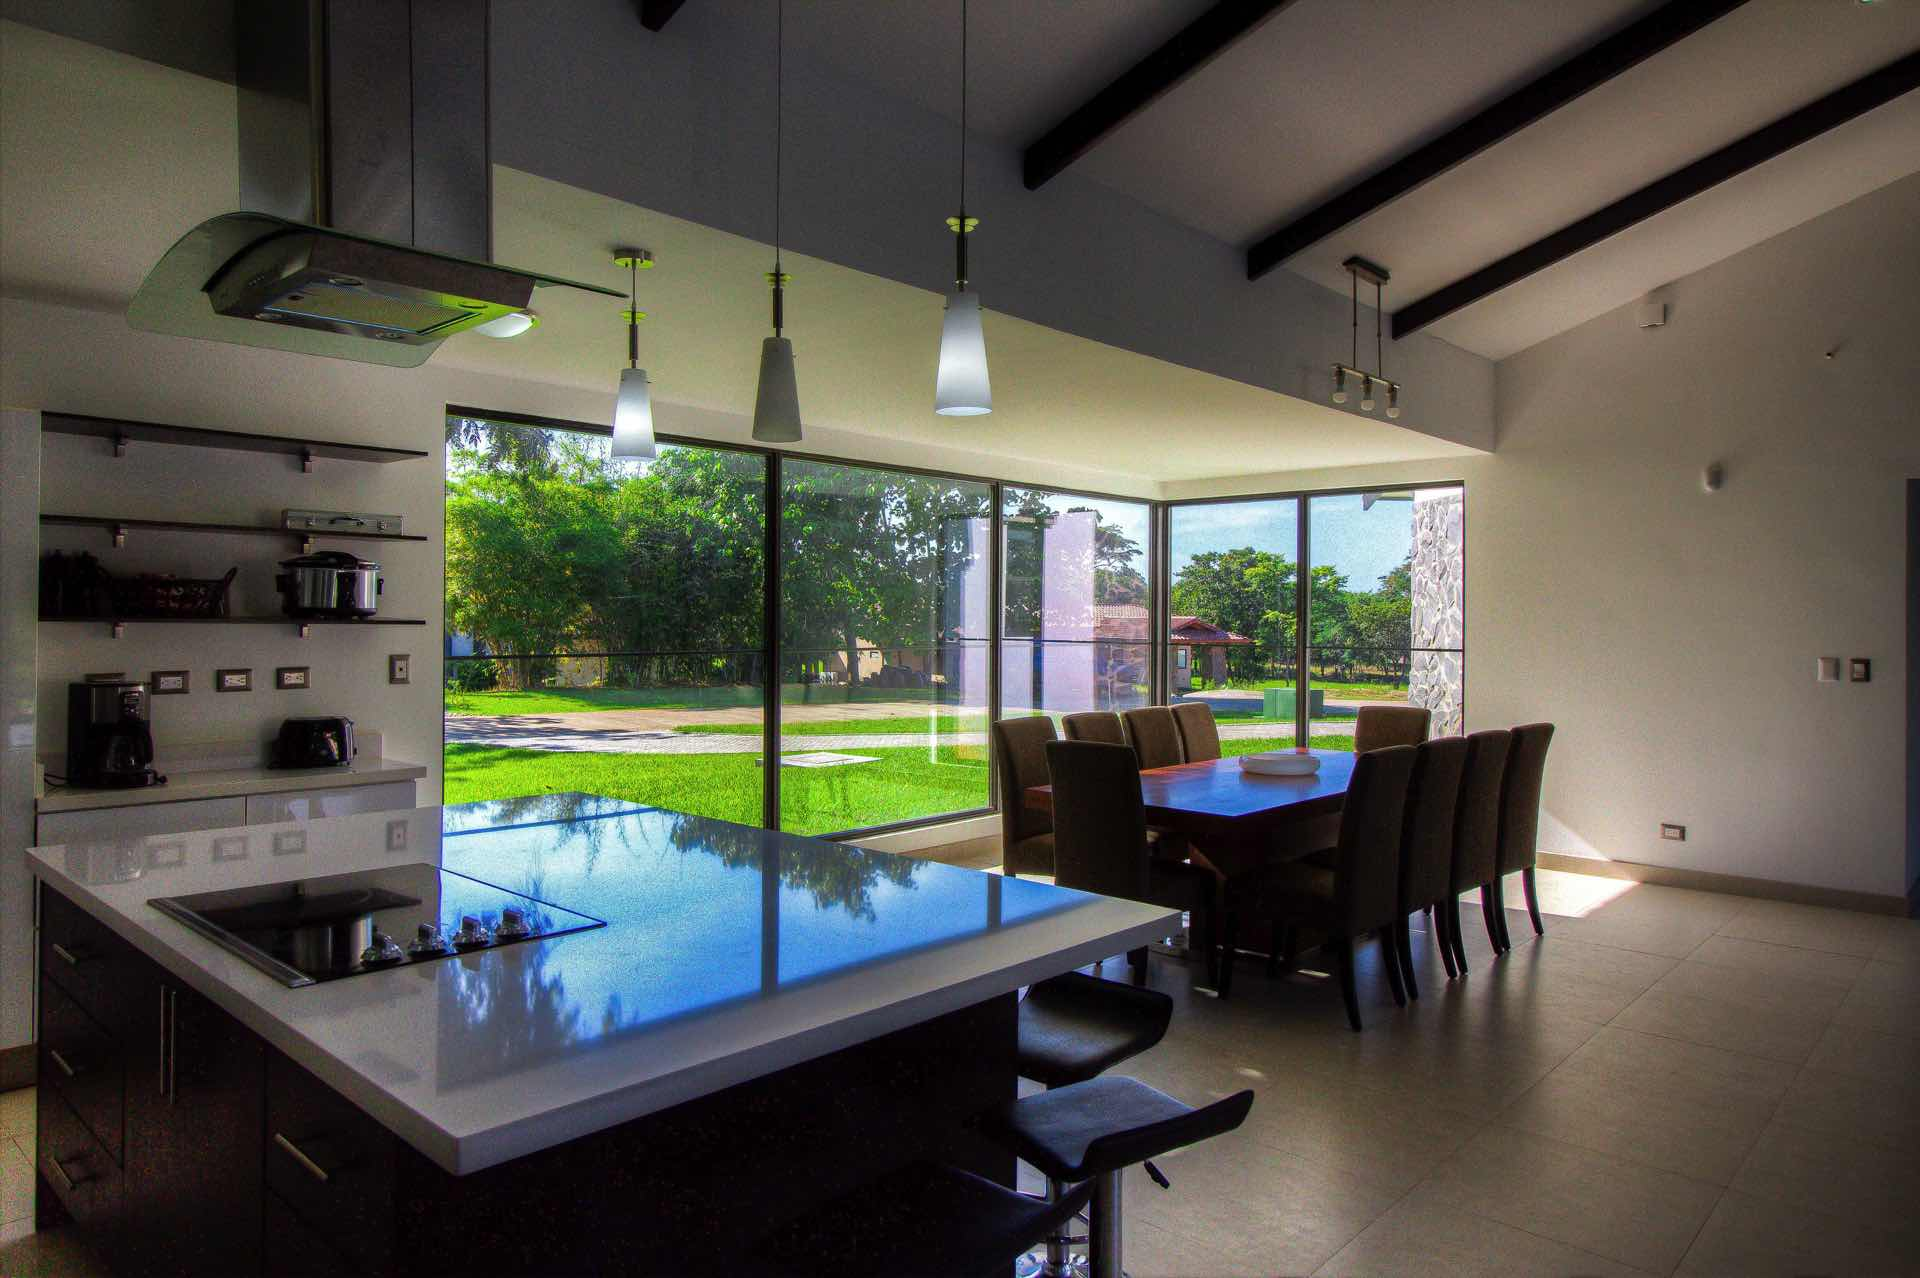 Casa Cielo's spacious kitchen